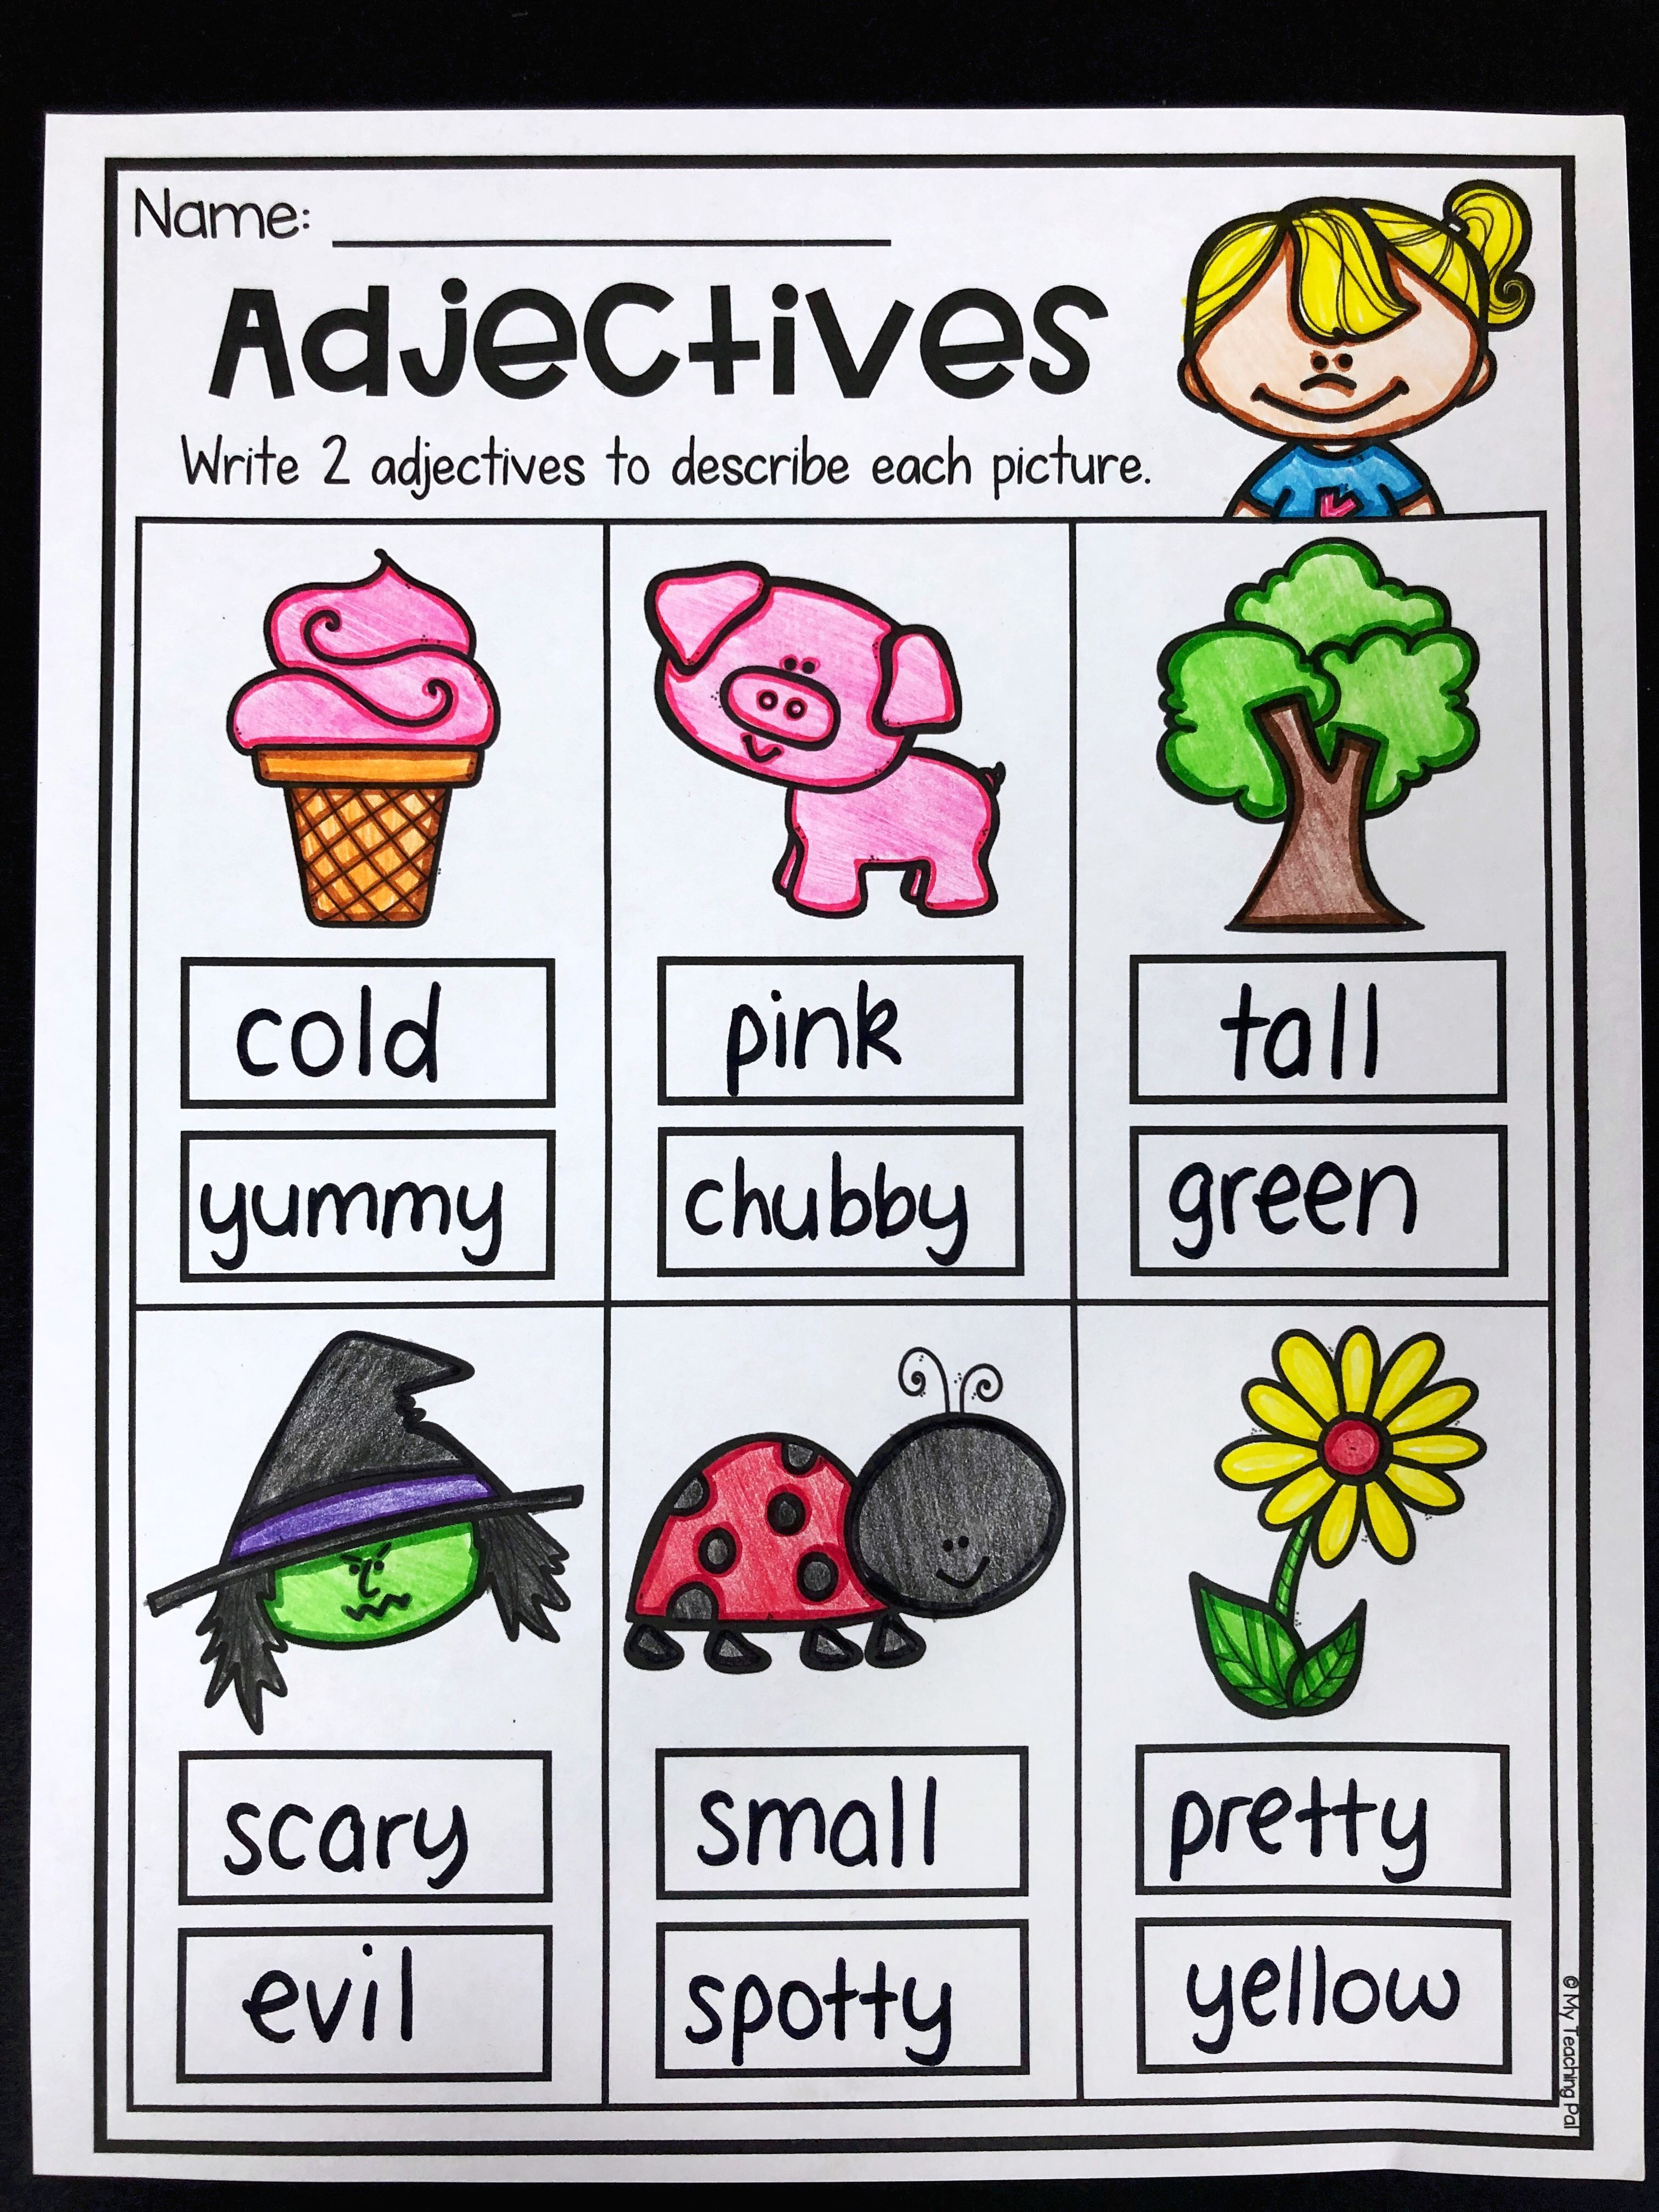 Adjectives worksheet for kindergarten and first grade. Students write two  adjectives to describe eac…   Adjectives activities [ 4032 x 3024 Pixel ]